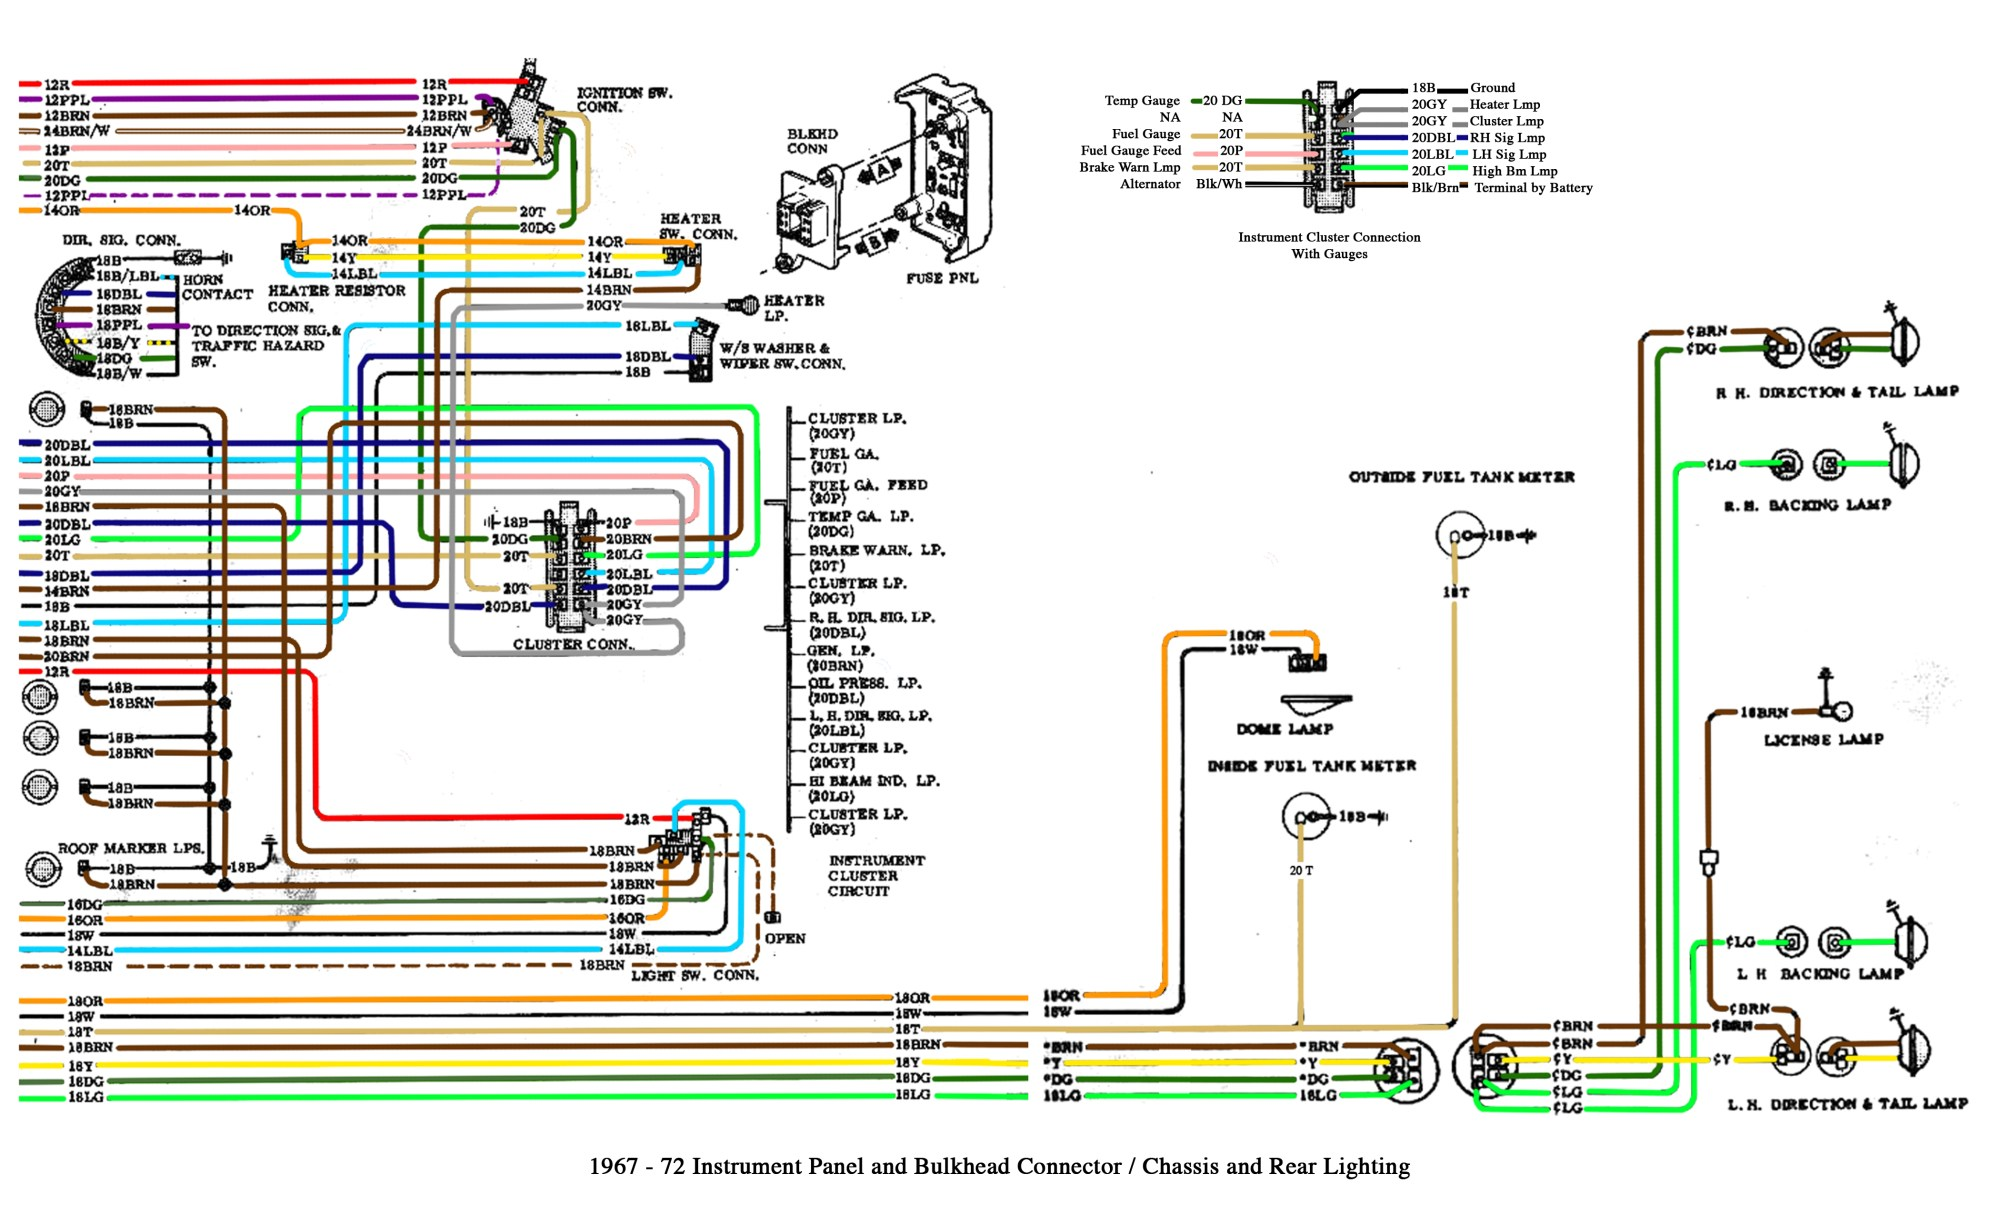 hight resolution of color wiring diagram finished the 1947 present chevrolet u0026 gmc1969 chevy truck wiring harness